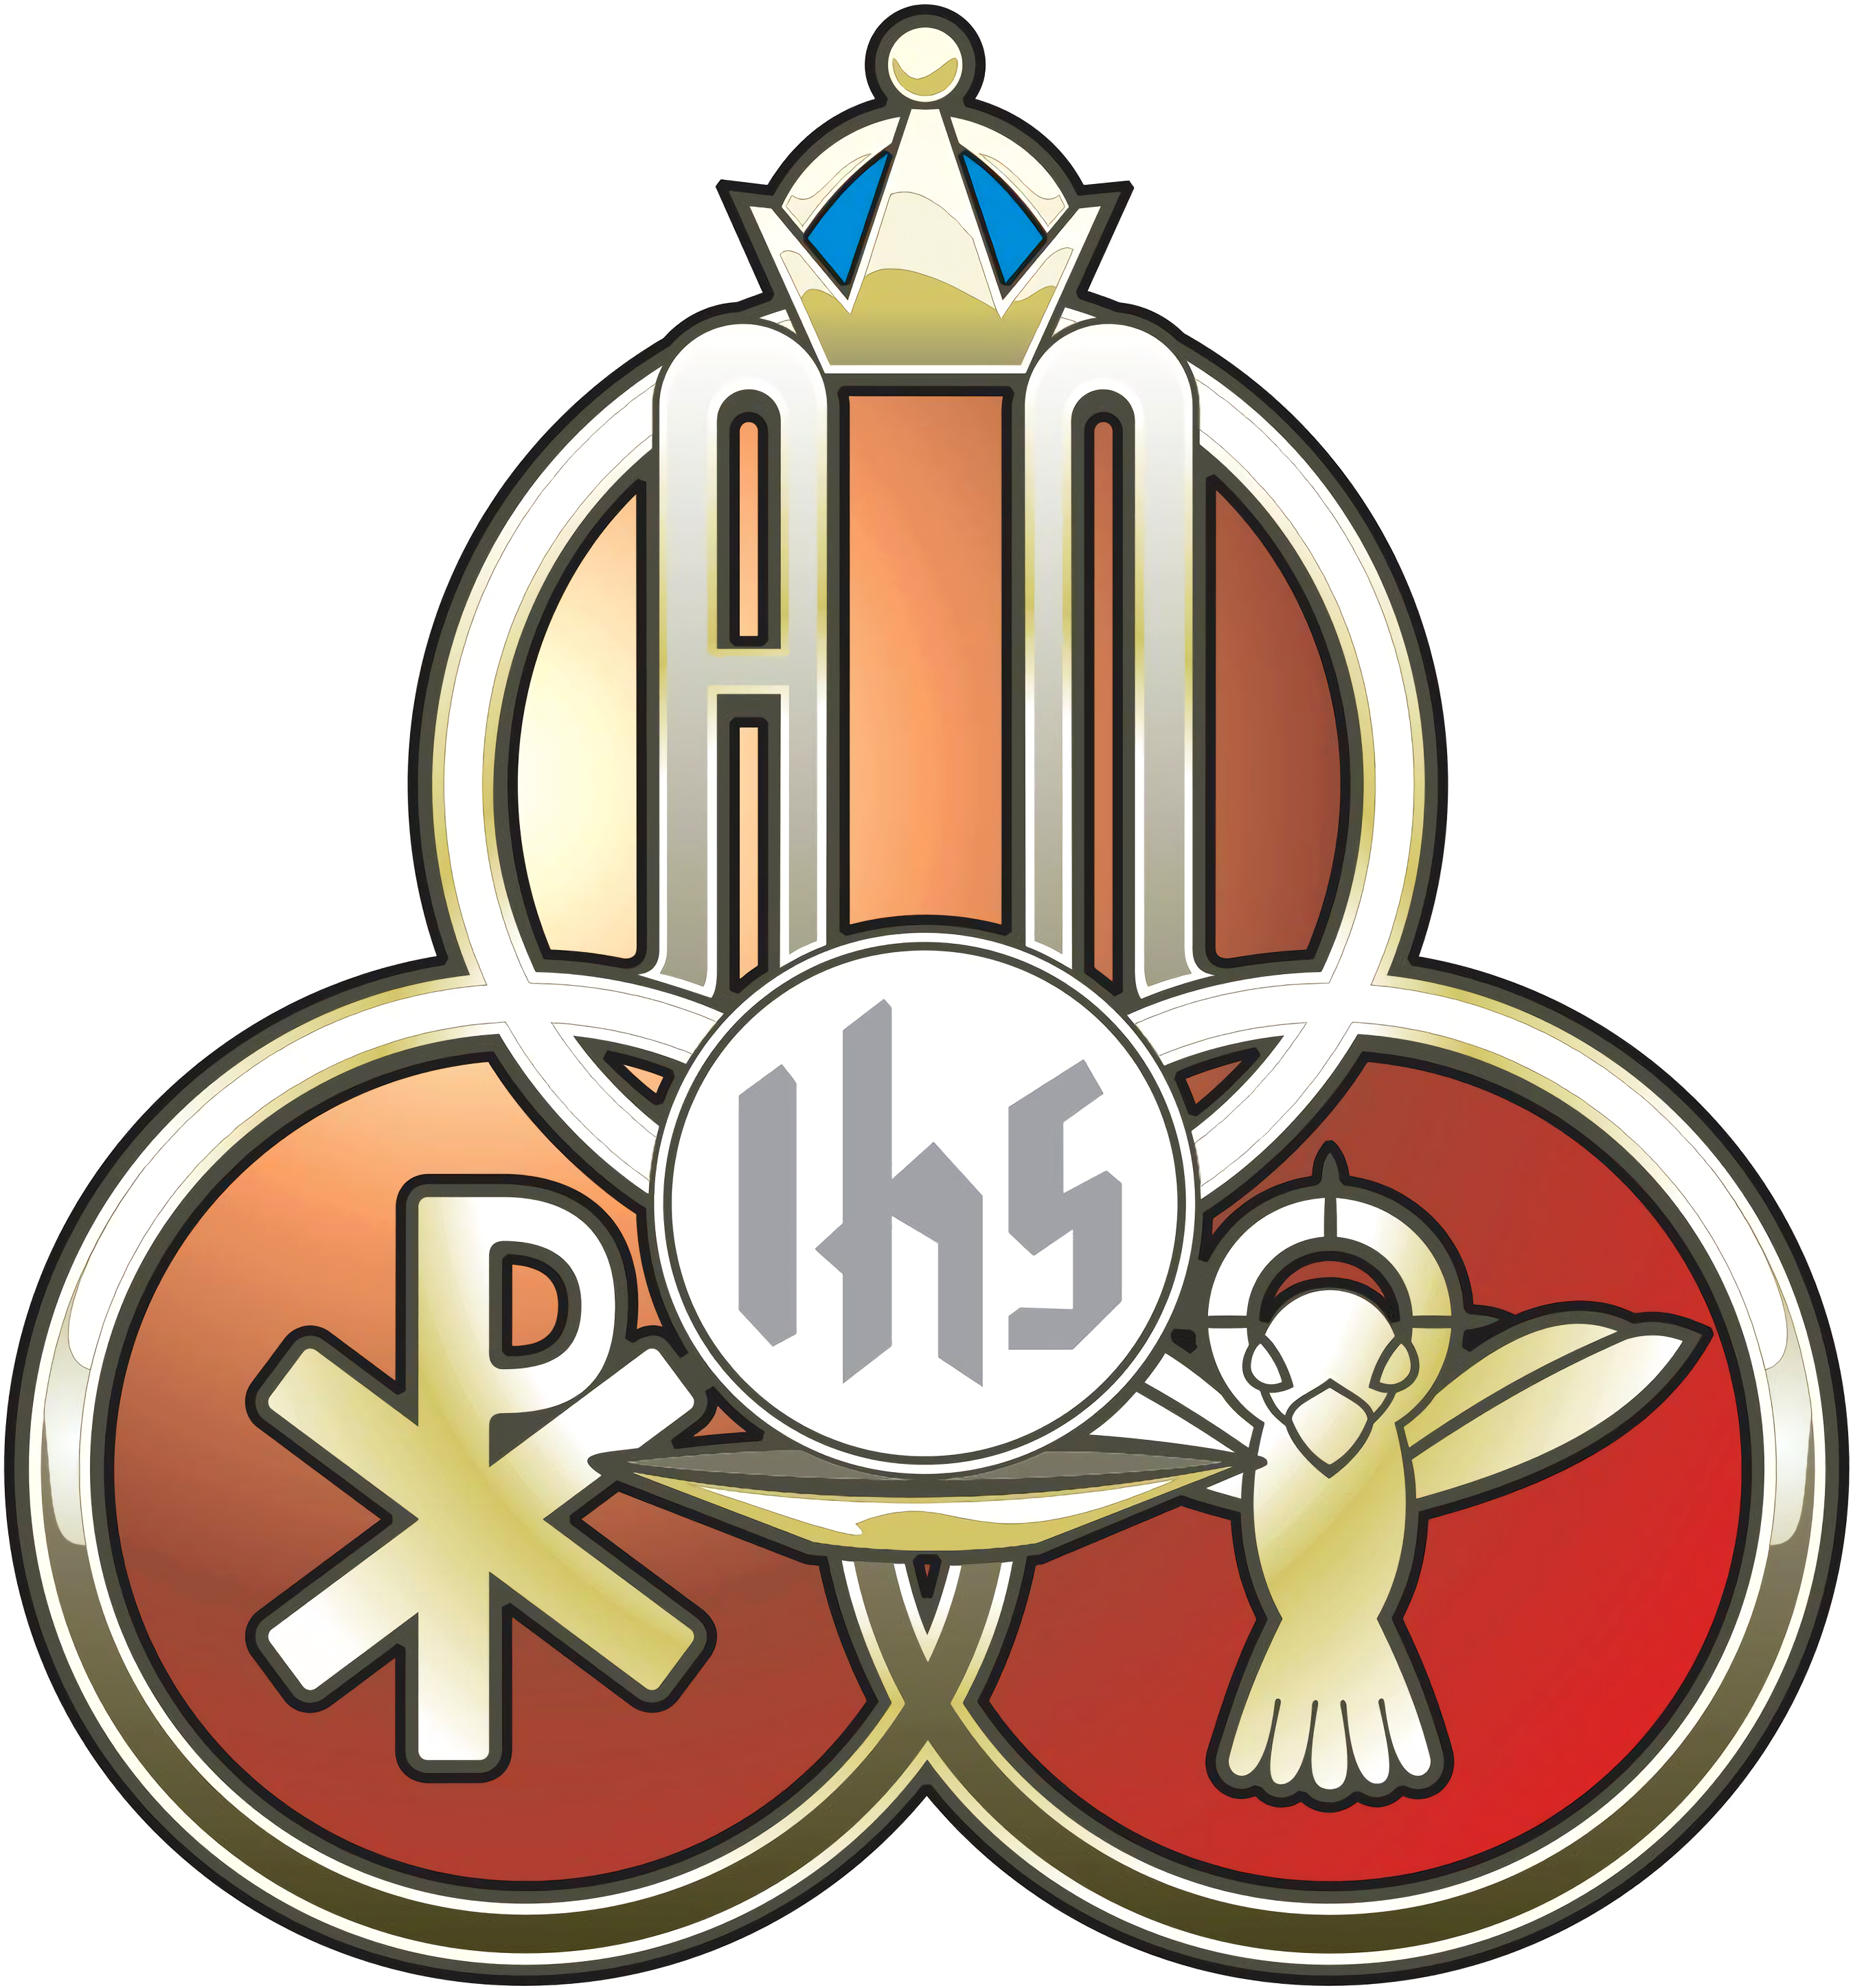 HD Holy Trinity Clipart At Getdrawings.